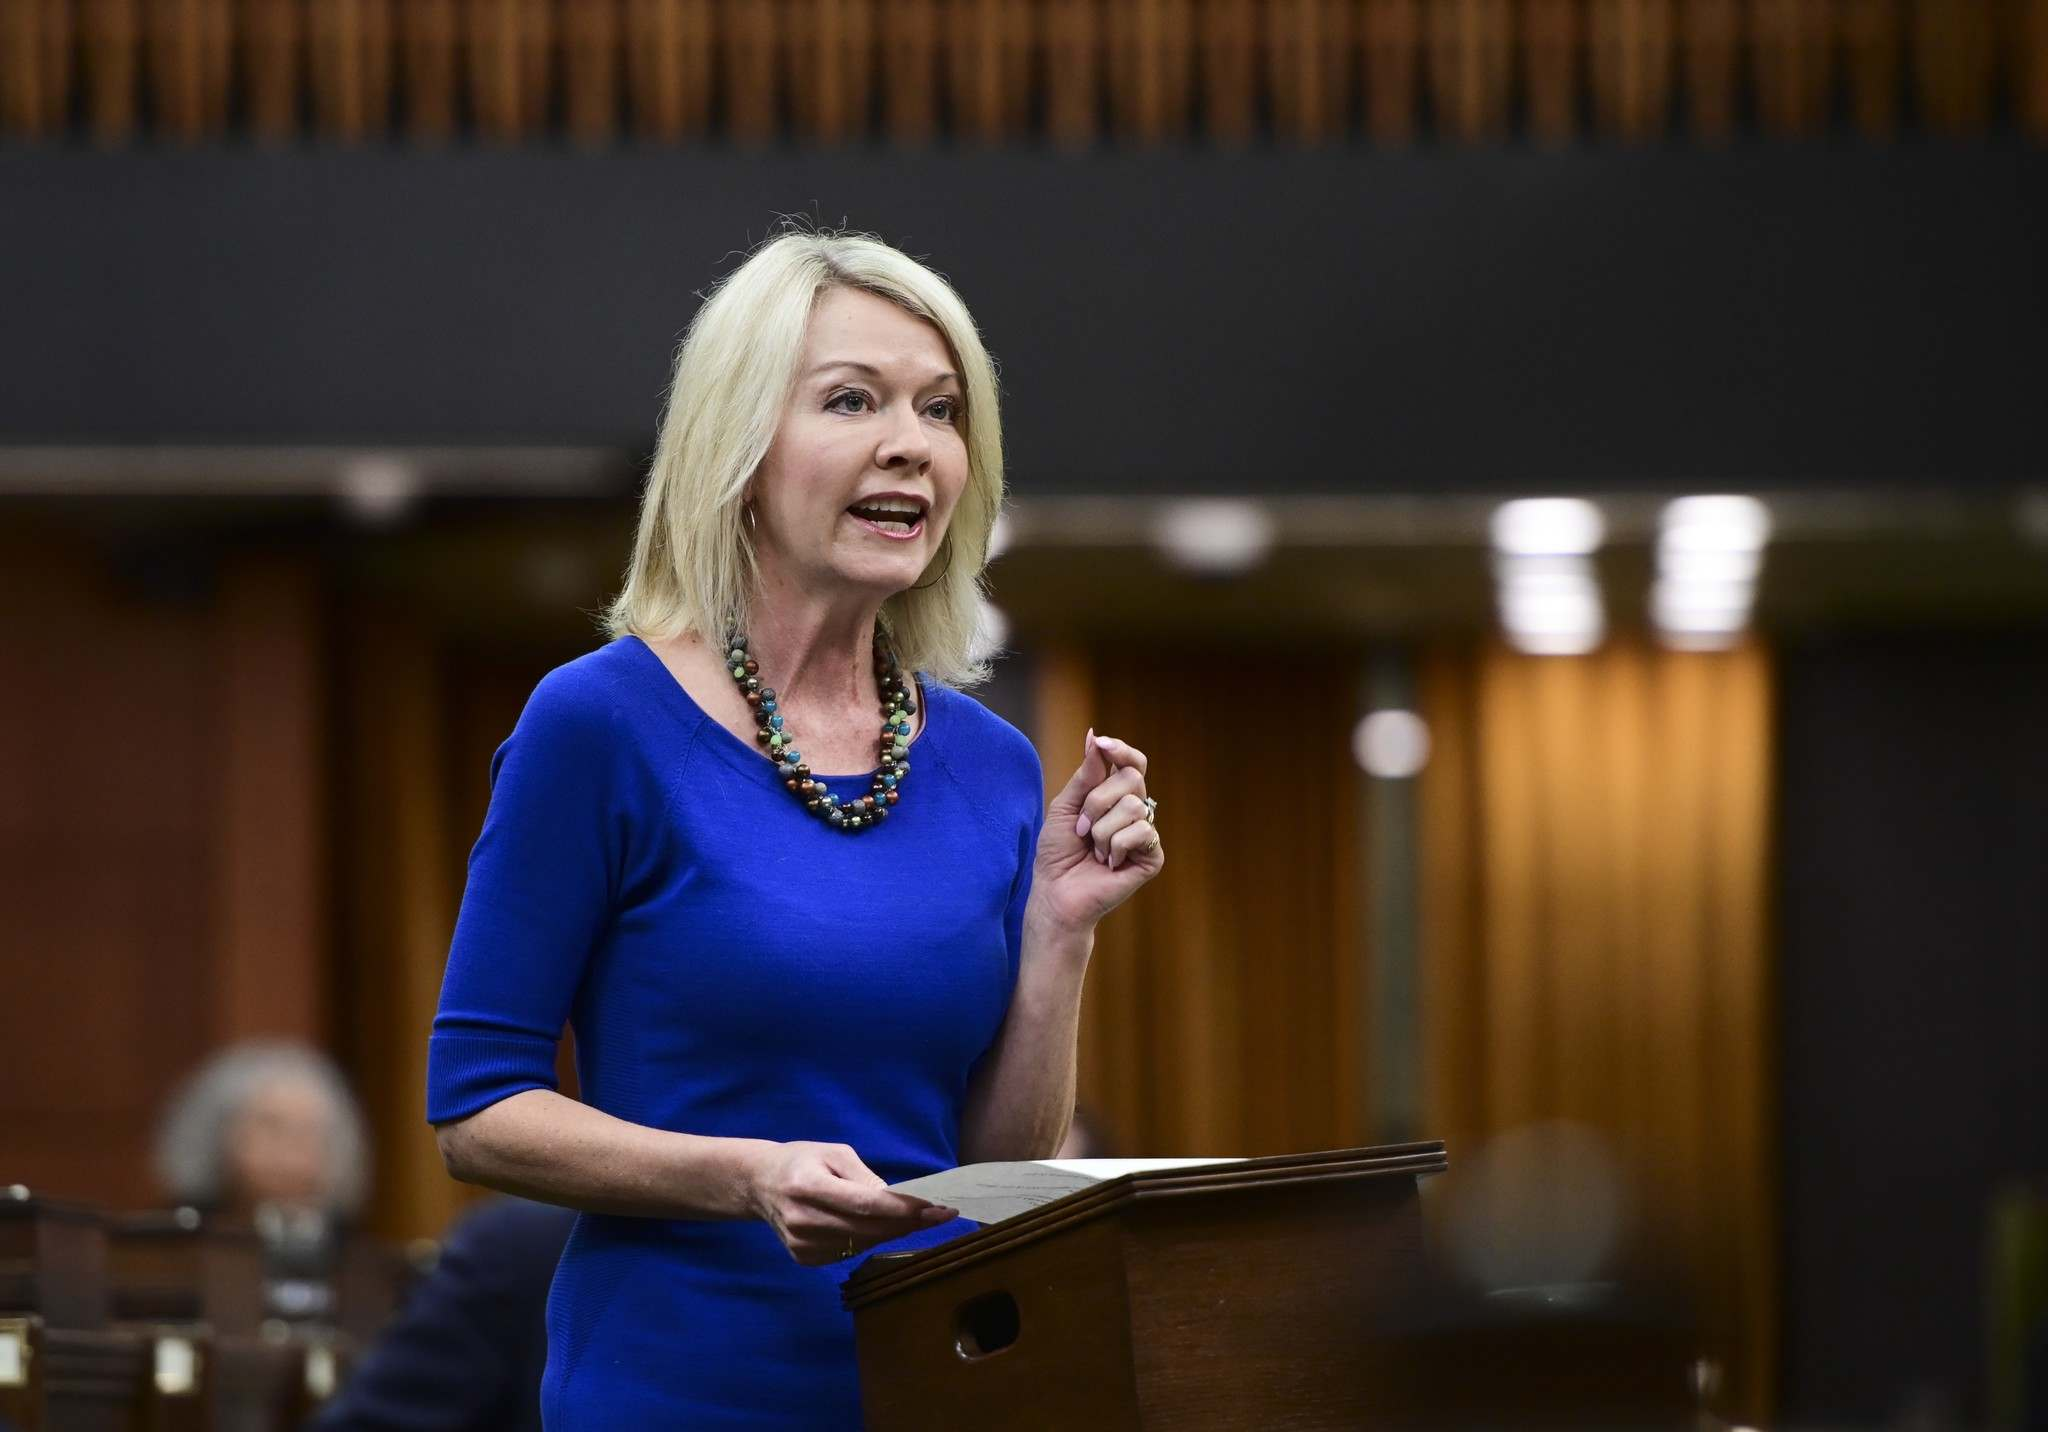 The PPC placed second with about 21 per cent of votes in Portage-Lisgar, which aligns with the drop in support for Tory incumbent Candice Bergen, who had 53 per cent of votes Monday.</p></p>